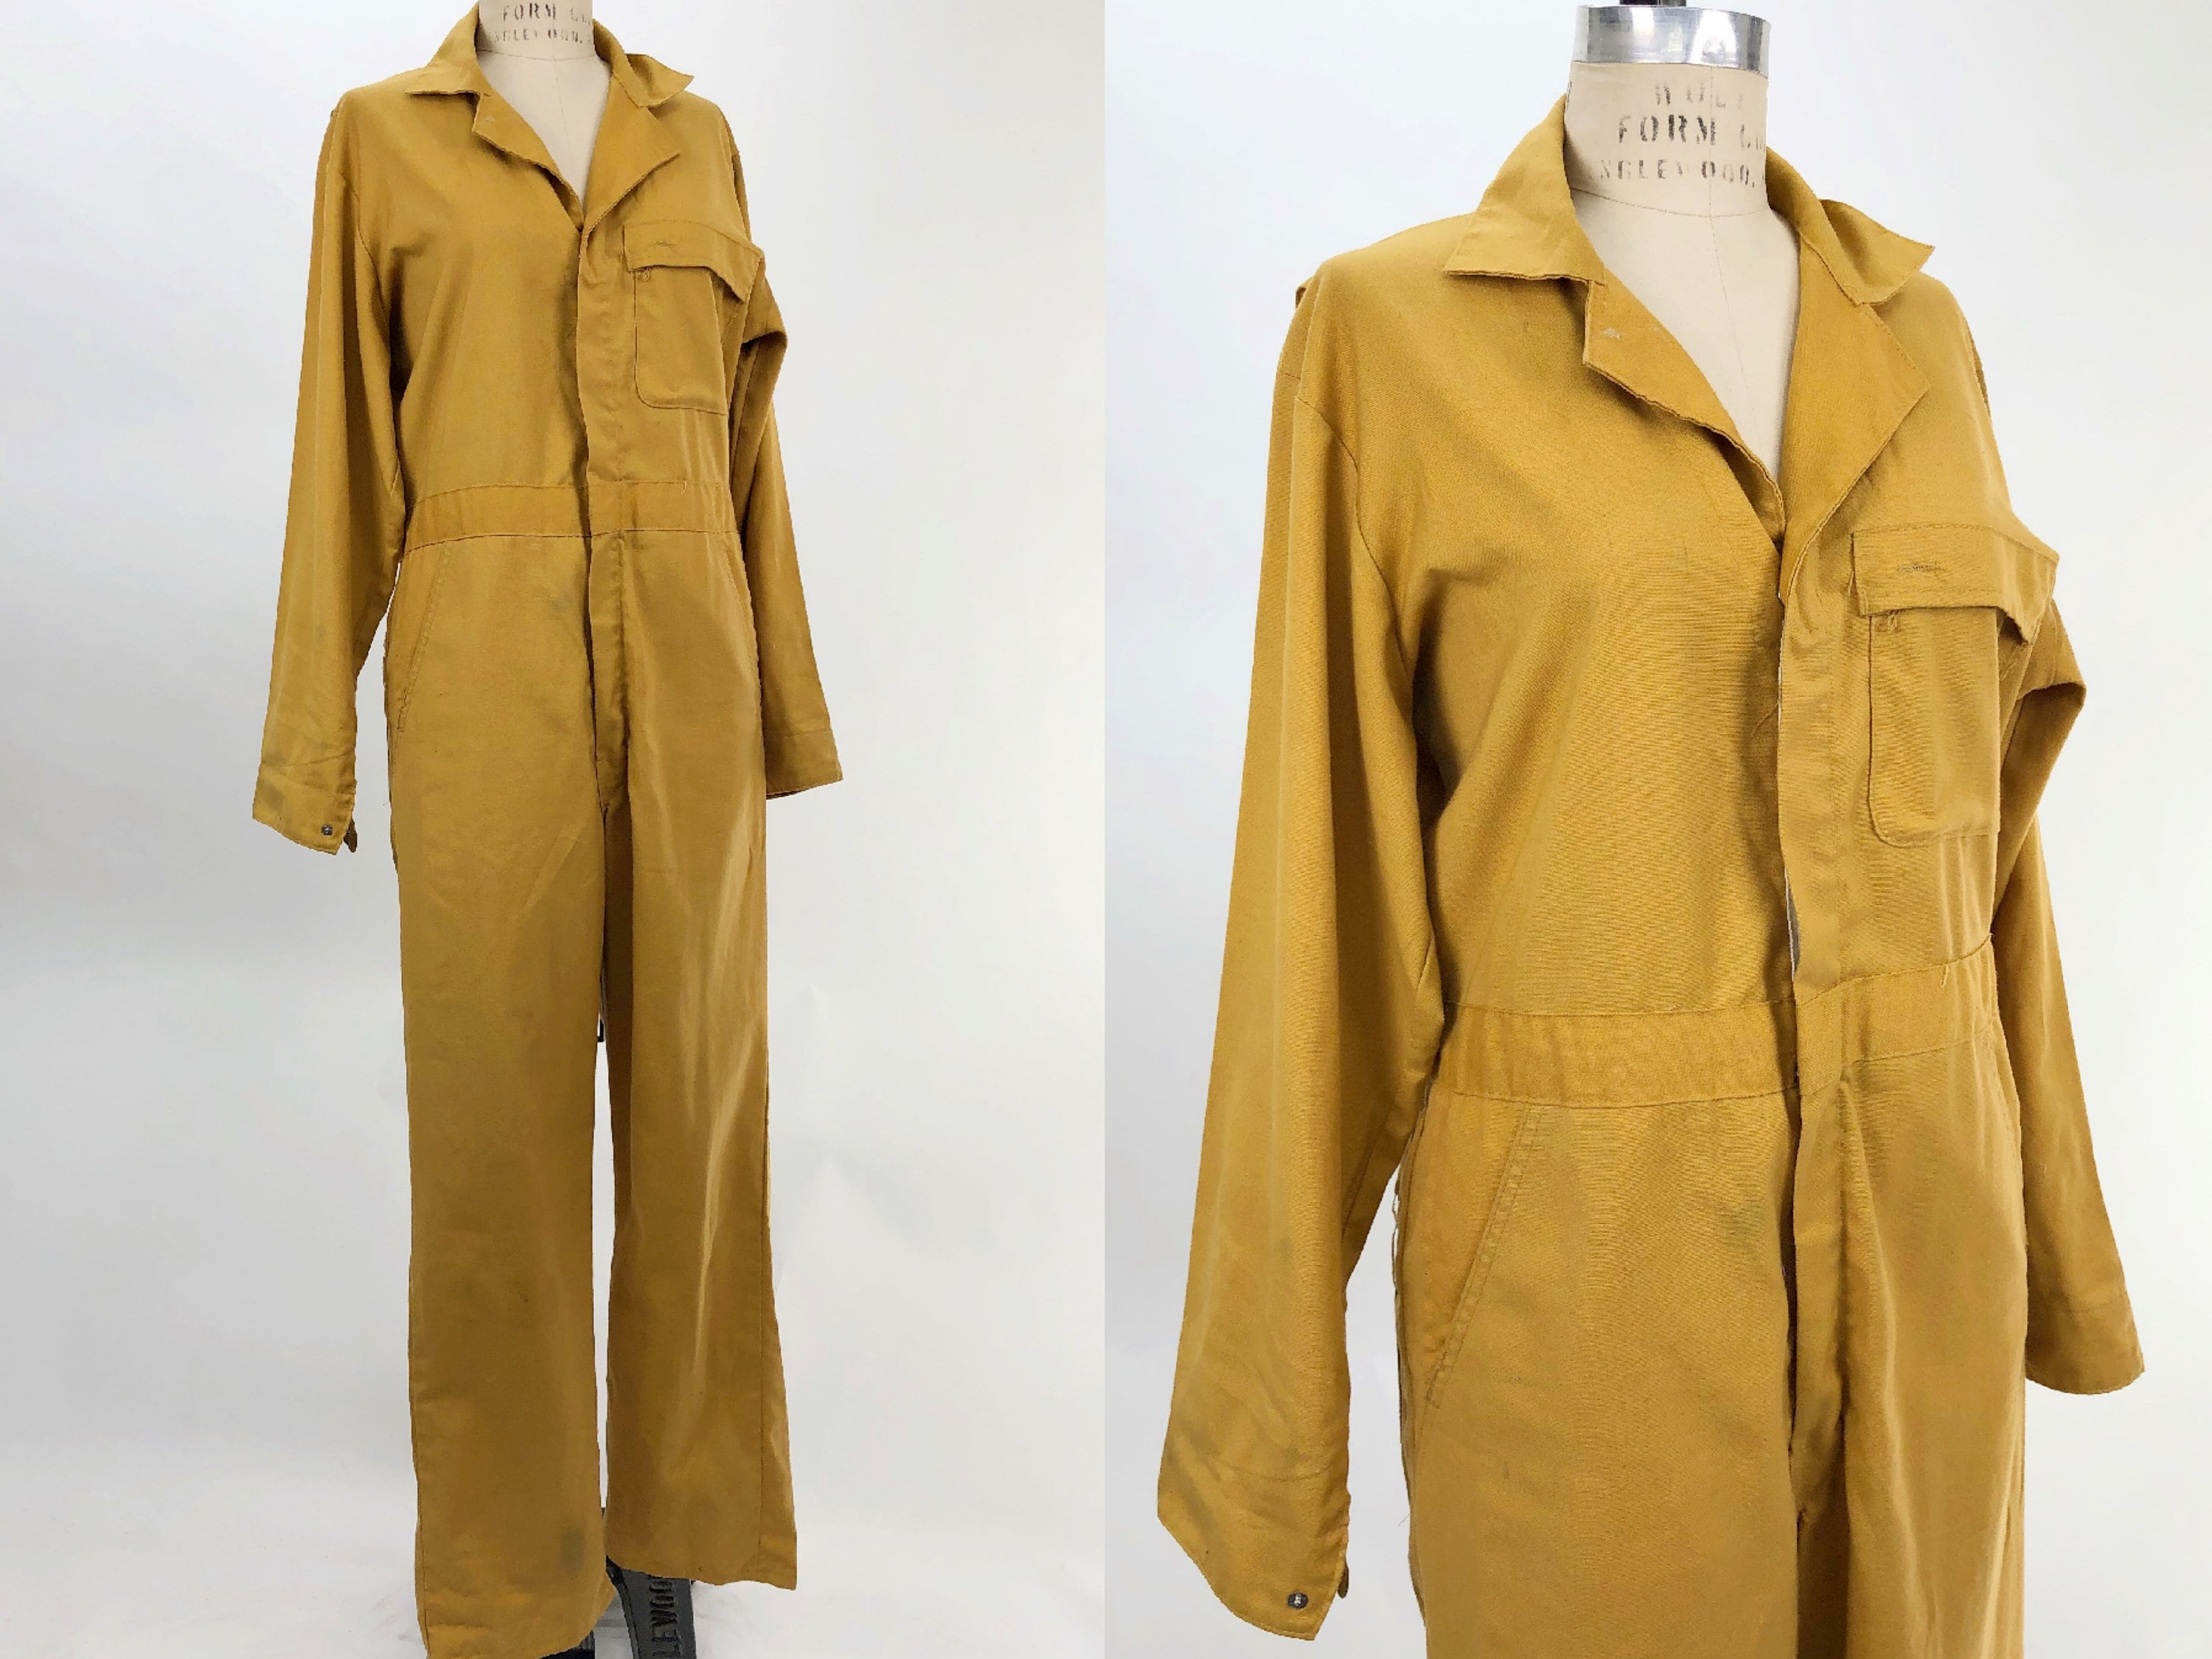 1940s Men's Shirts, Sweaters, Vests Vintage 1940S Mustard Yellow Utility Coveralls, 40S Menswear, Workwear, Mens Jumpsuit, Military, Size Large $45.00 AT vintagedancer.com